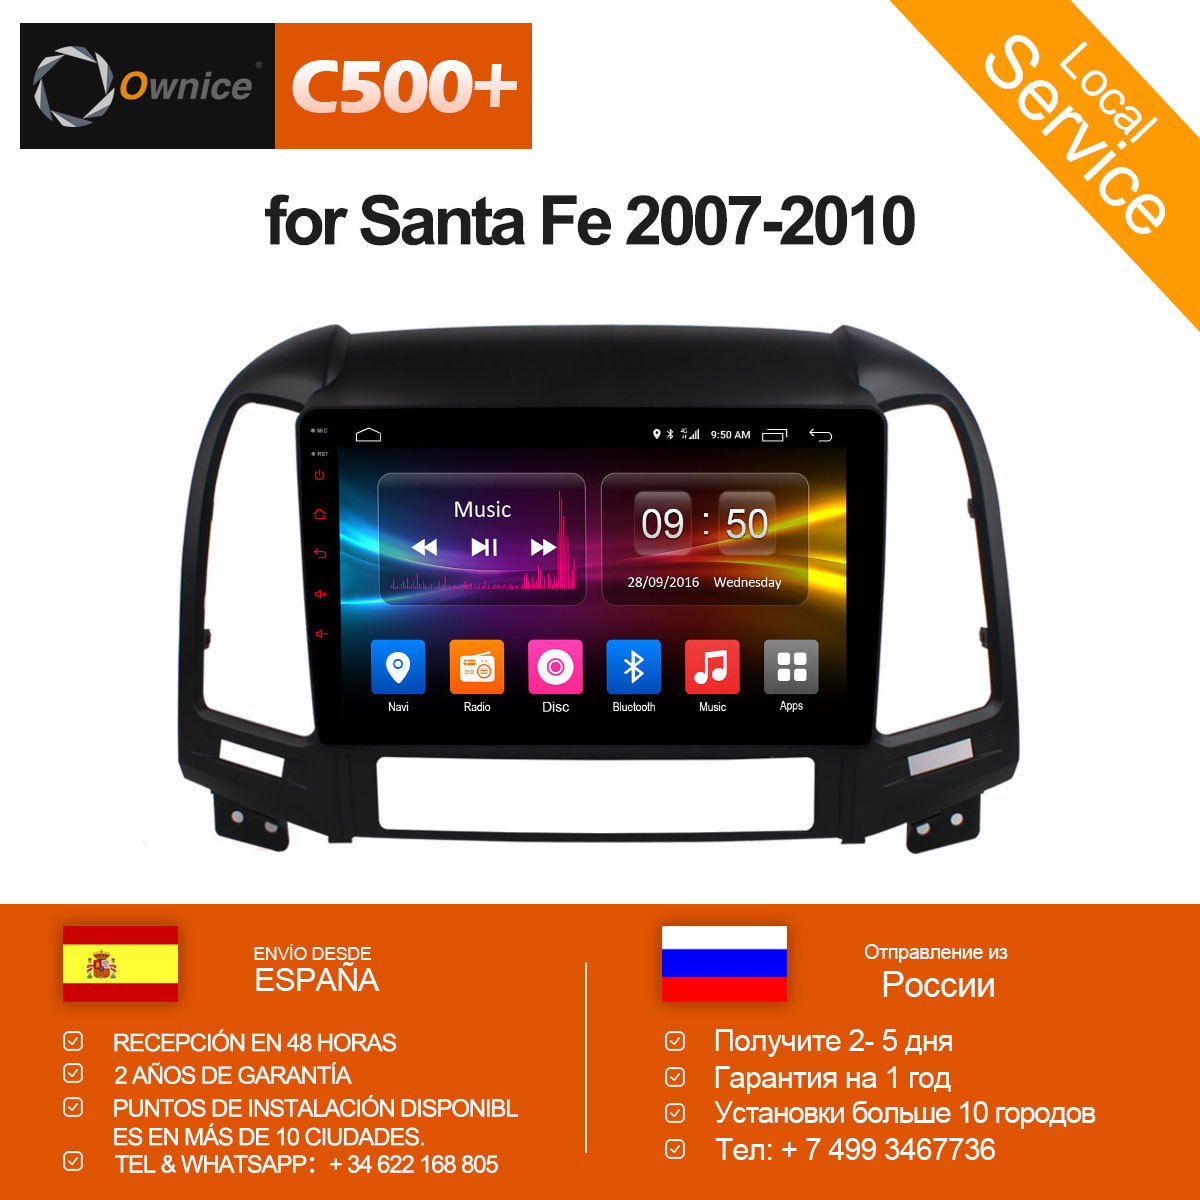 Ownice C500+ G10 Octa Core Android 8.1 Car DVD for Hyundai Santa Fe 2007 - 2010 Radio Navigation gps player 32G+2G 4G SIM LTE ownice c500 android 6 0 octa 8 core 4g sim lte car dvd player for great wall hover h3 h5 with gps navigation radio 32g rom